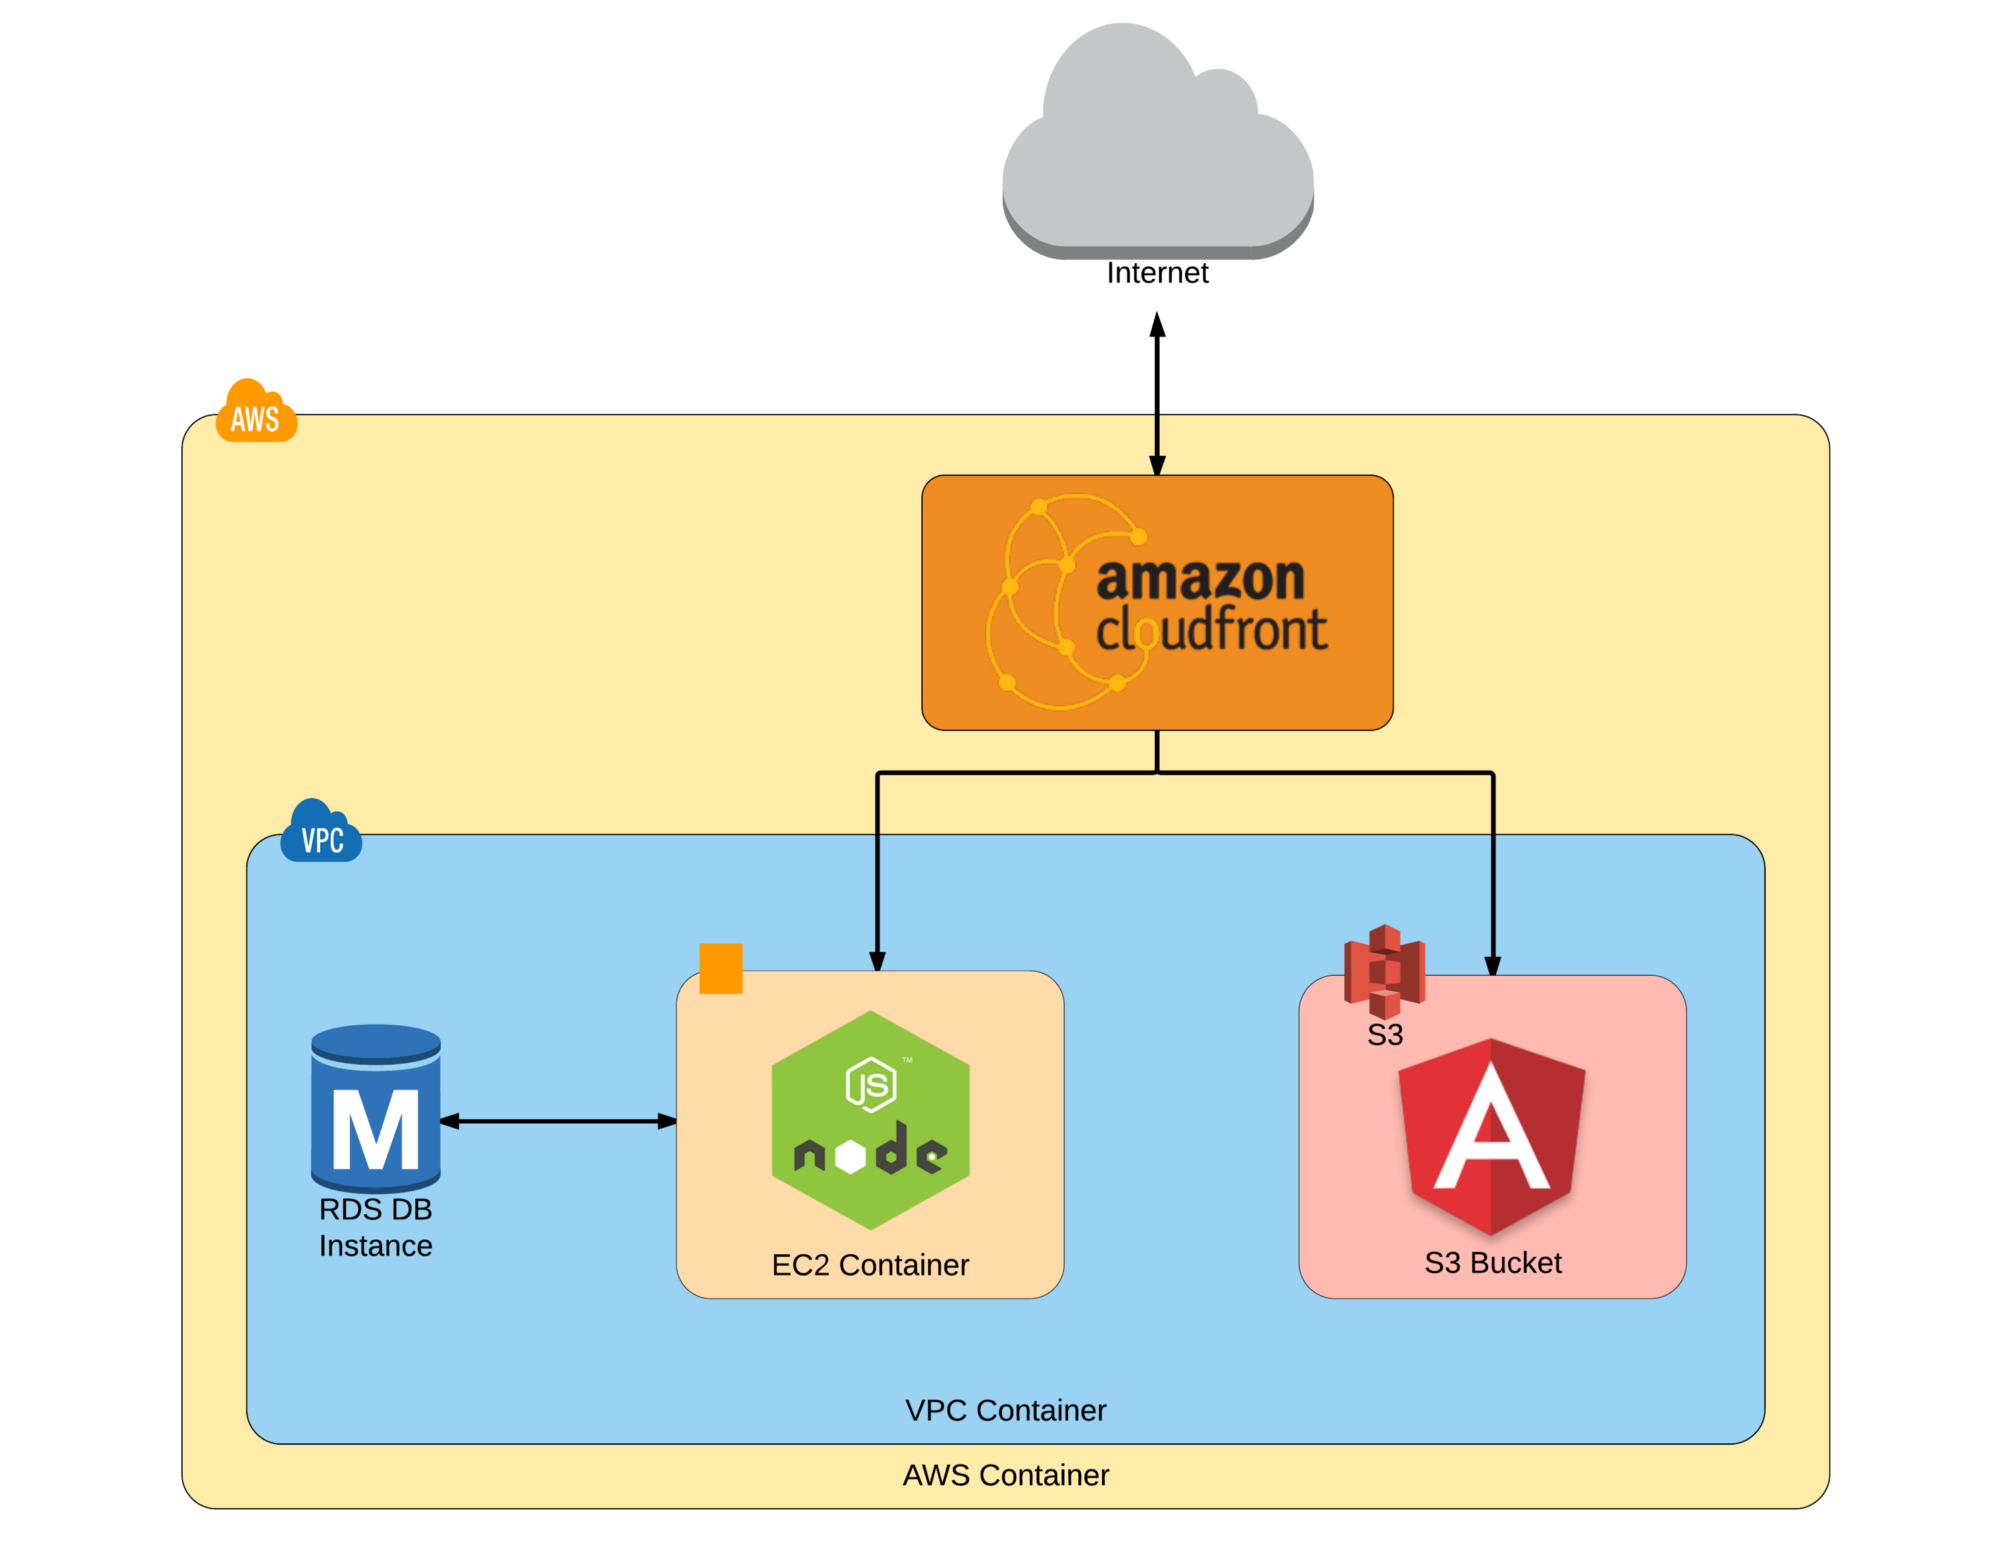 Deploy Angular 2 + node js website using AWS - codeburst